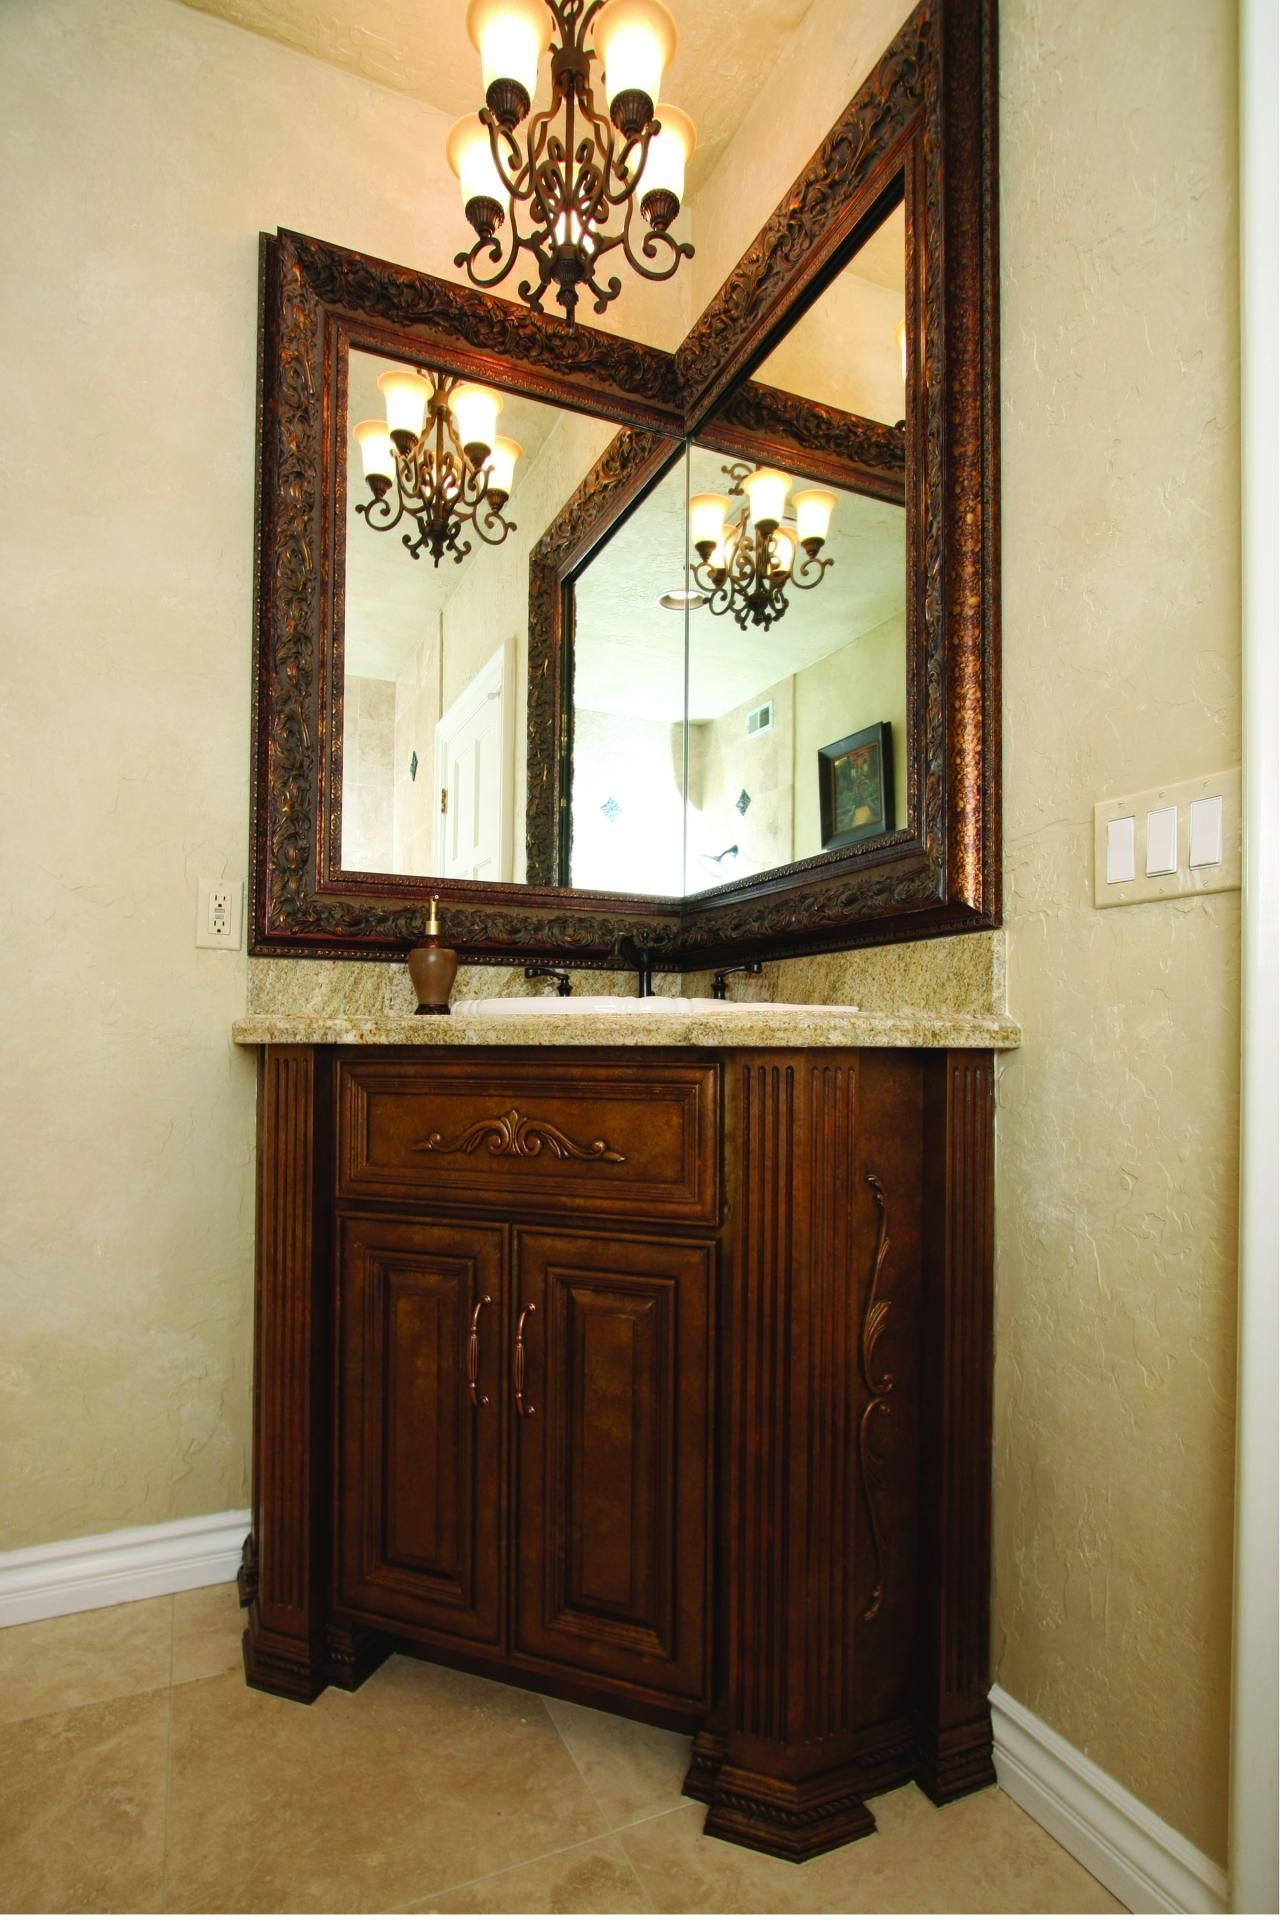 catching size eye vanity bathroom mirrored top